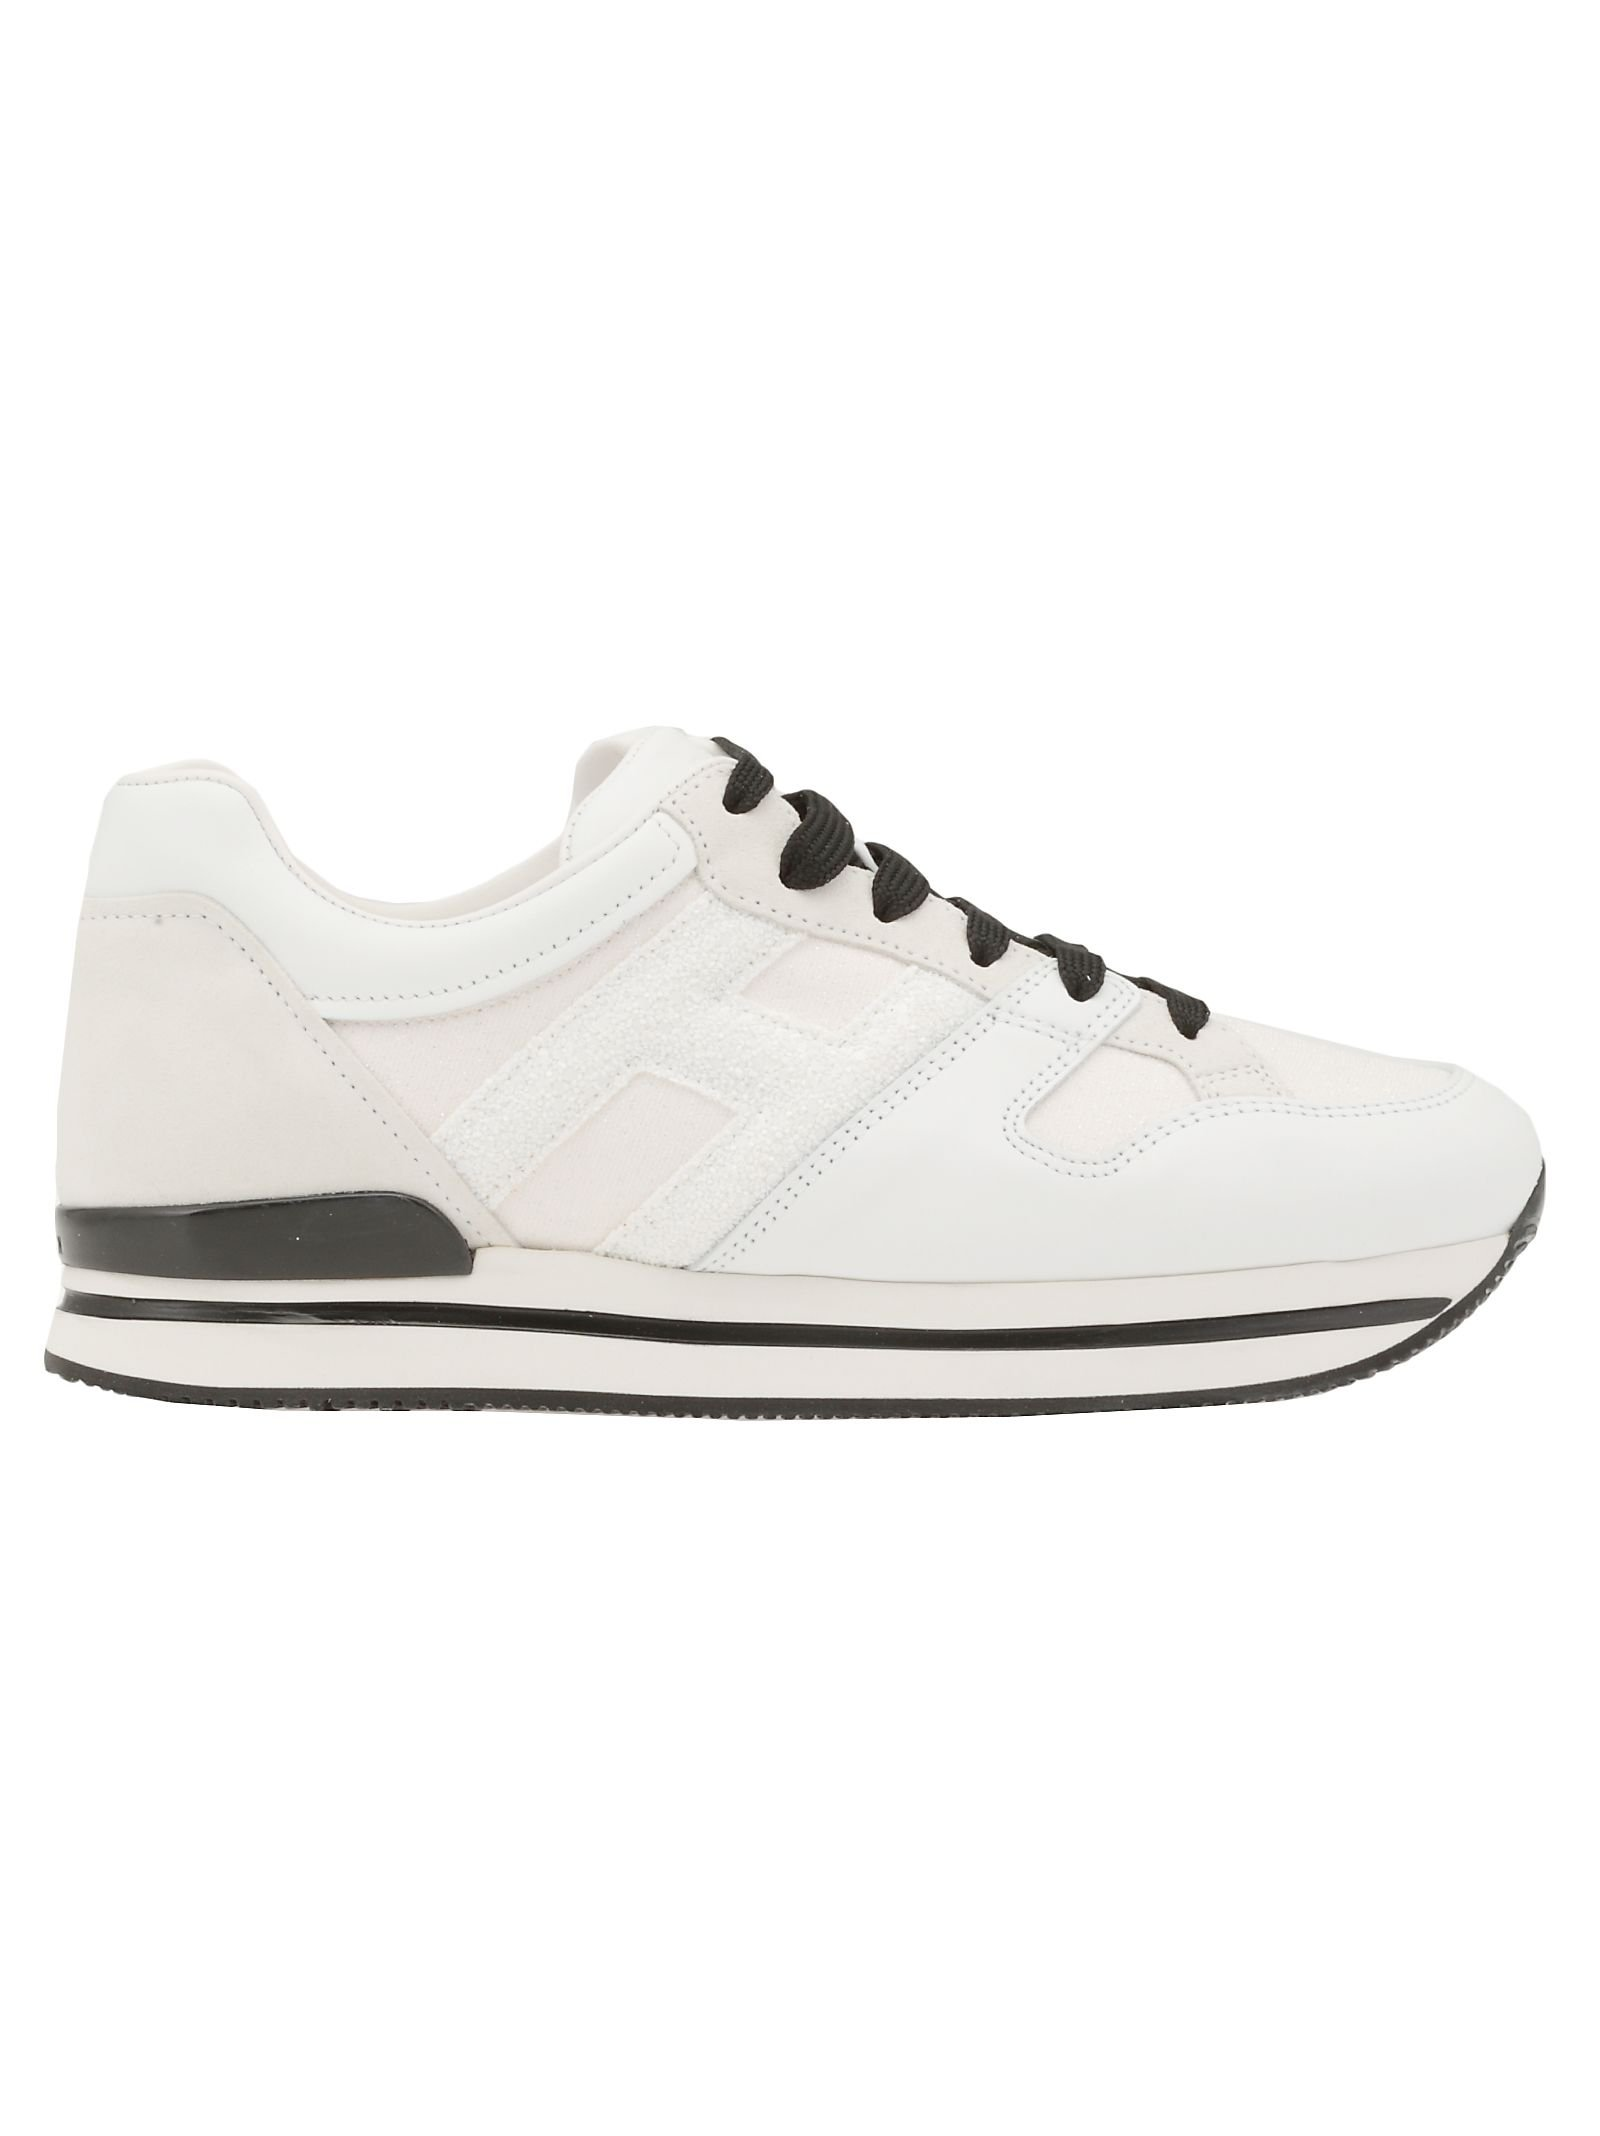 Hogan Smooth Leather Sneakers